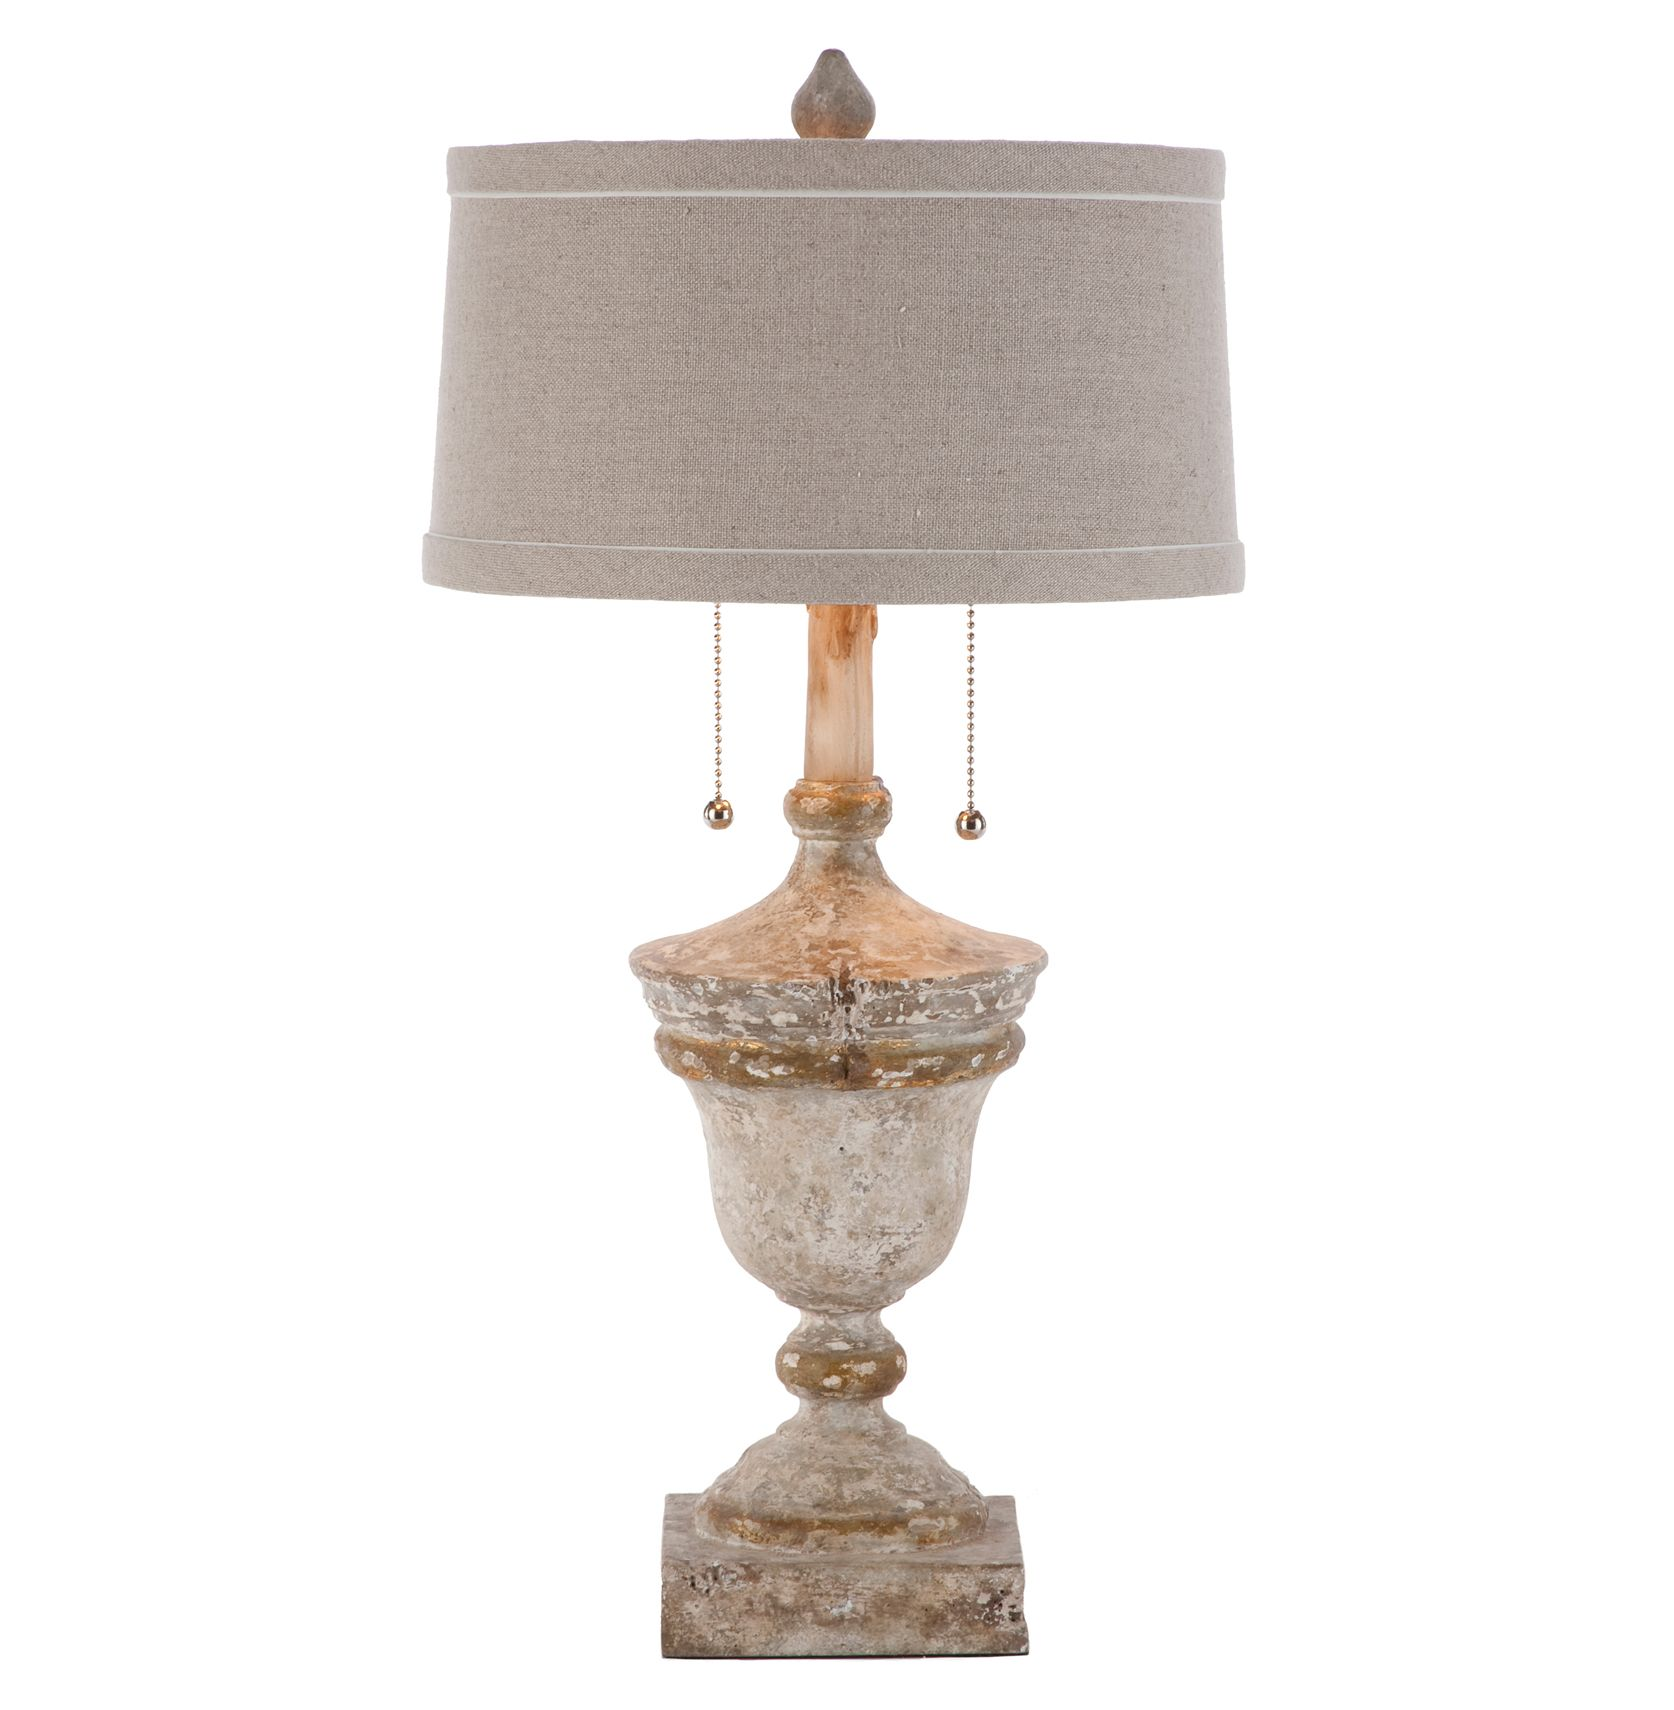 Namur Gold French Country Architectural Fragment Table Lamp Table Lamp Design White Table Lamp Table Lamp